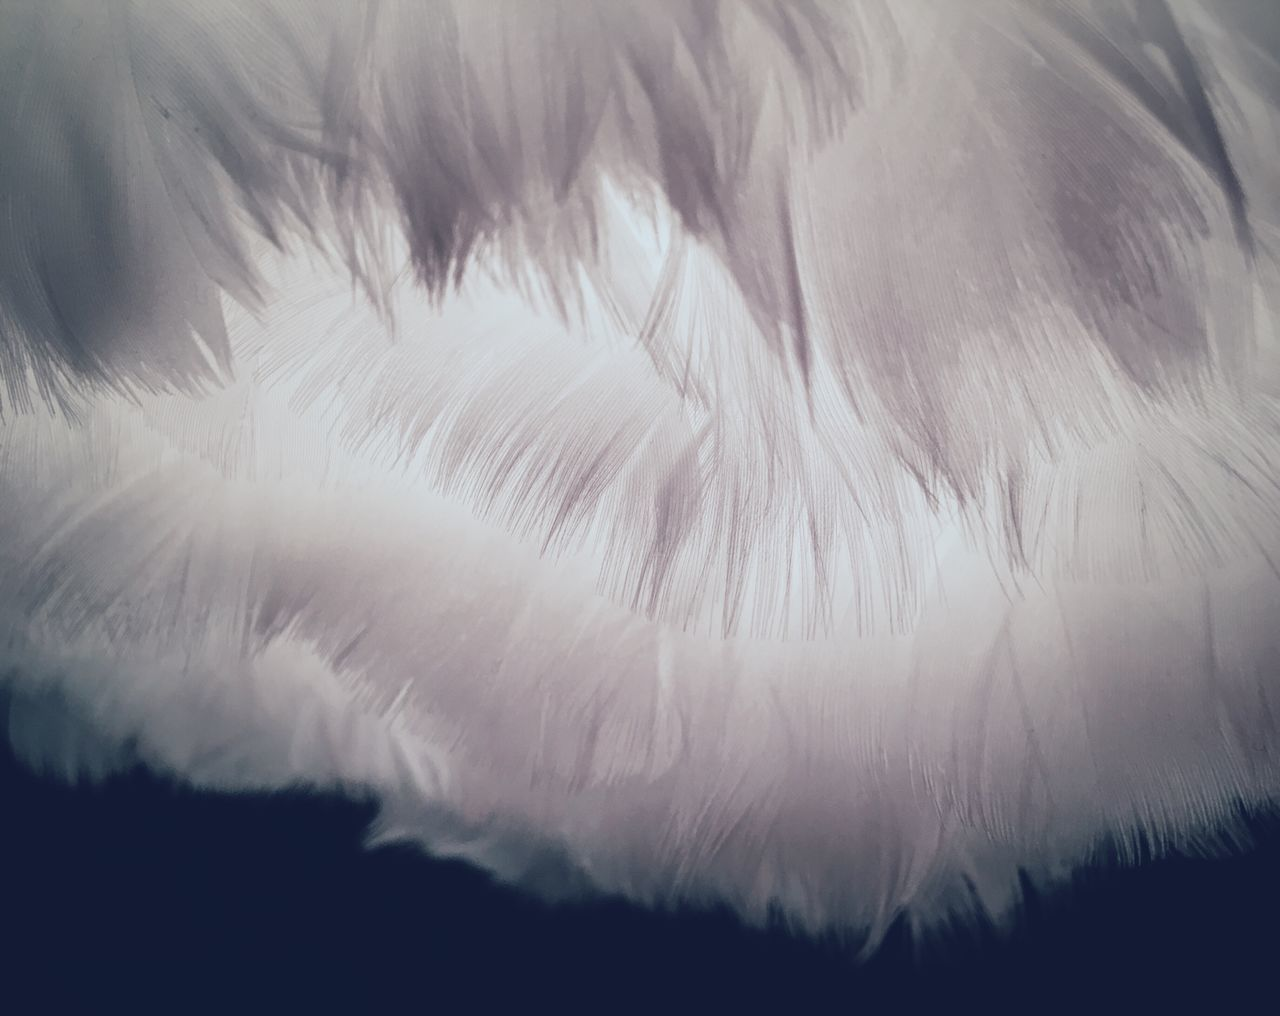 It's so fluffy!!! P332 Softness Close-up Fluffy White Selective Focus Beauty In Nature Nature Freshness Extreme Close-up Fragility Tranquility Smooth Feathers Feather  Light Source Full Frame Monochrome